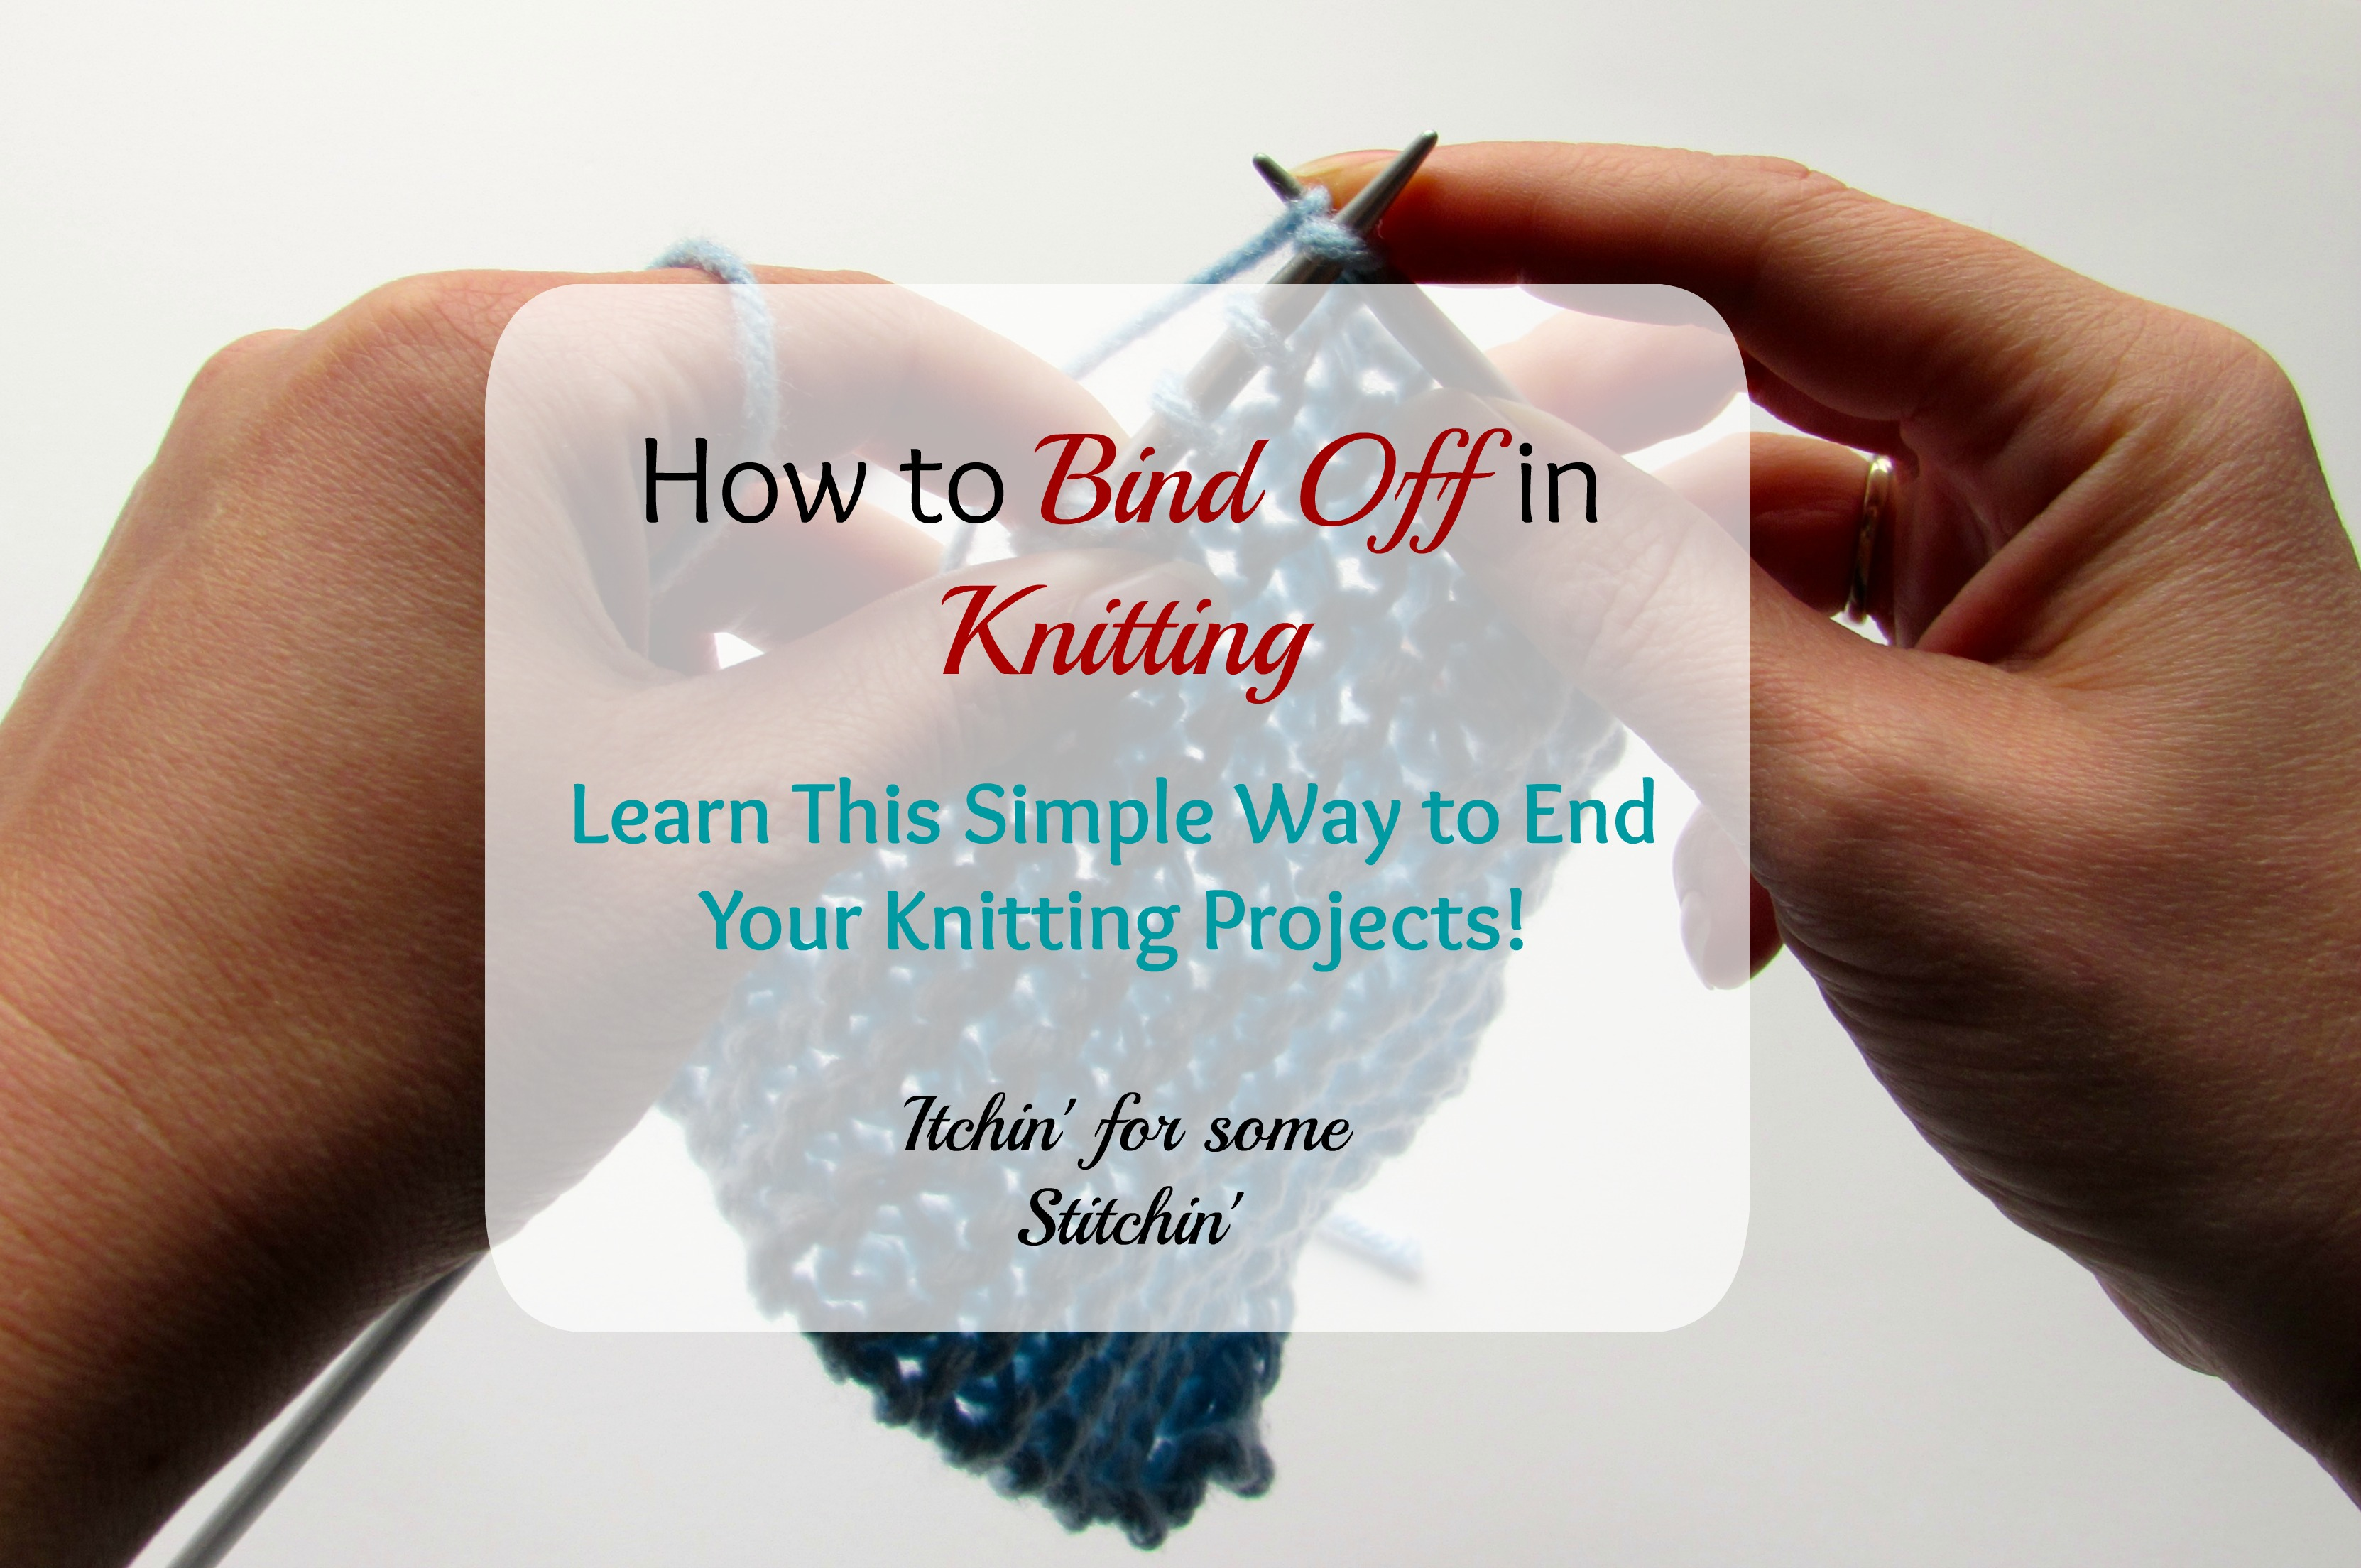 how to cast off in knitting the easy way itchin 39 for some stitchin 39. Black Bedroom Furniture Sets. Home Design Ideas